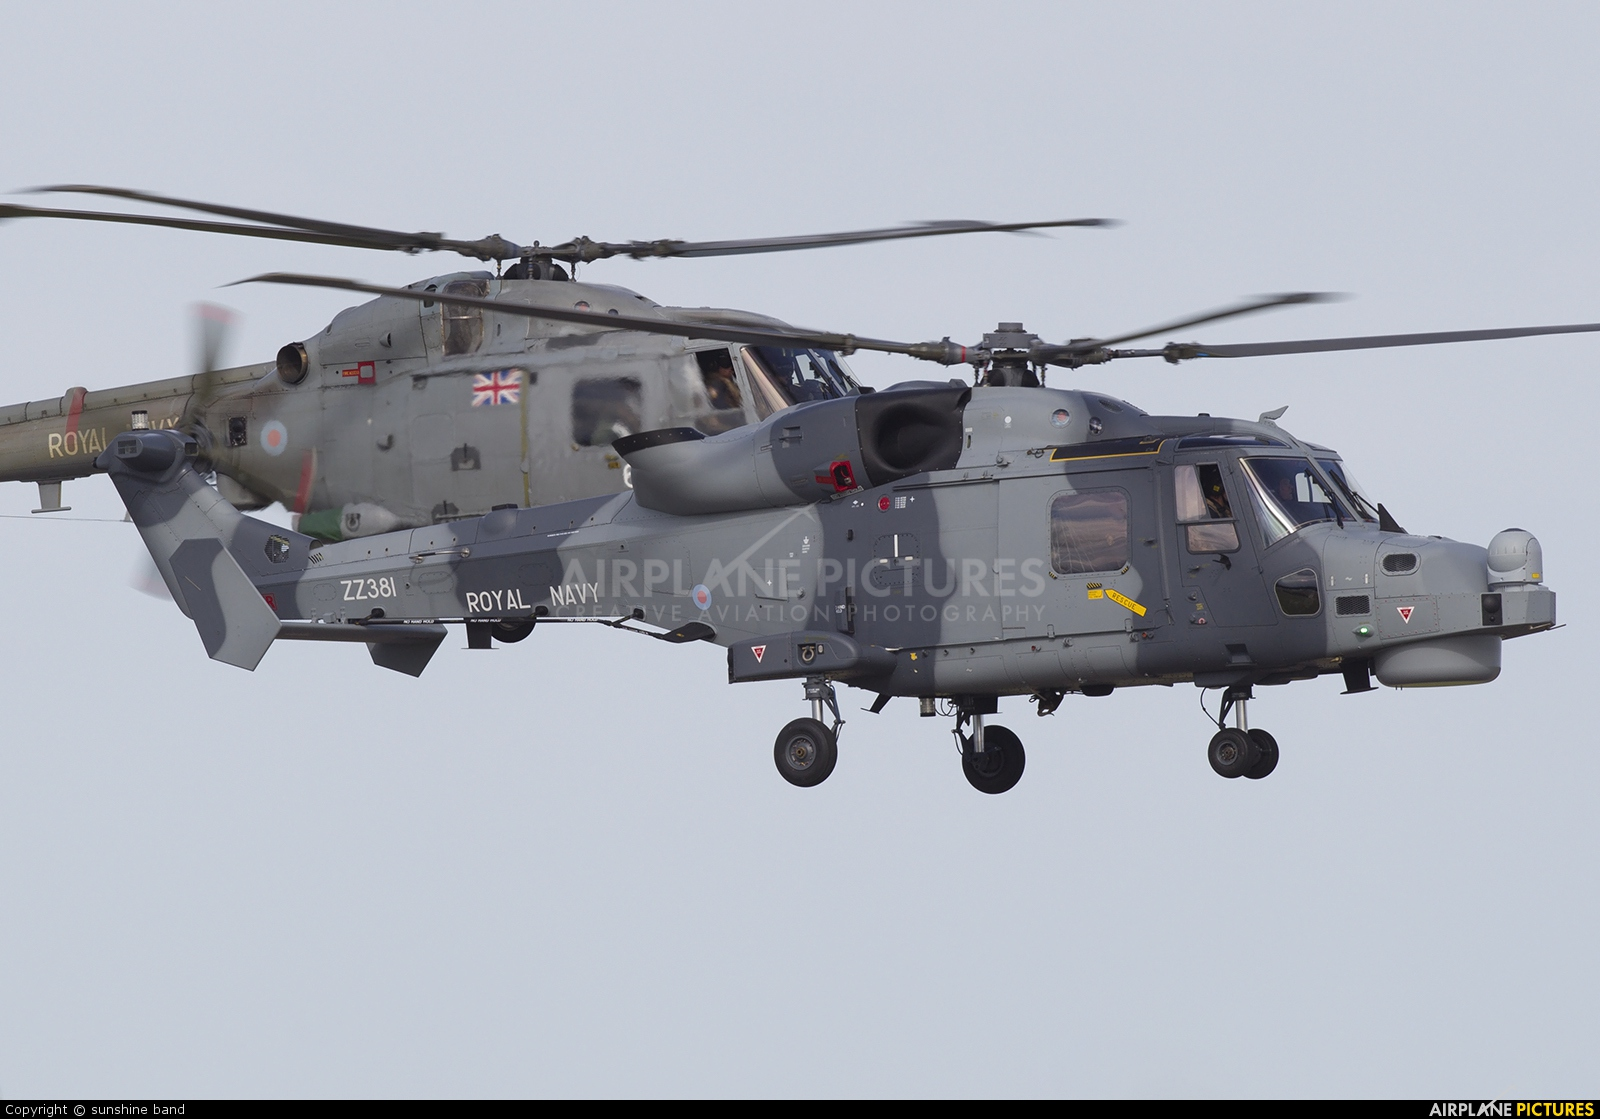 helicopter airplane military with Zz381 Uk Navy Agusta Westland Aw 159 Lynx Wildcat Ah 1 on Indian Fighter Jet Sukhoi Su 30 Mki further 6388 Cessna 182p Skylane Model Airplane furthermore Jet Cartoon Images as well Auxiliary power unit together with NvLNgP3oljs.